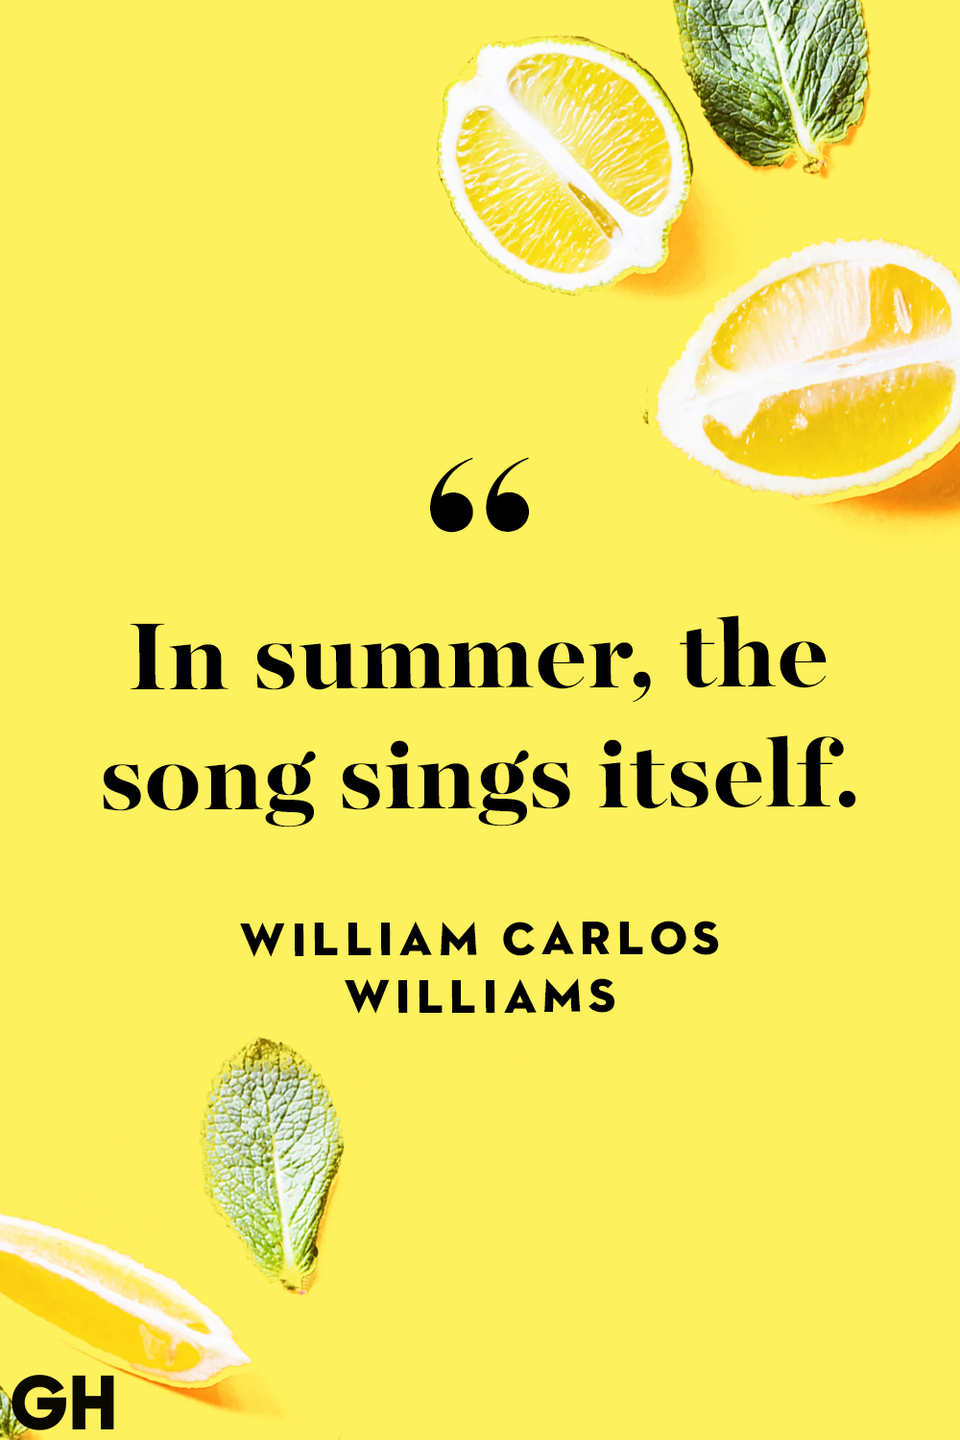 <p>In summer, the song sings itself.</p>